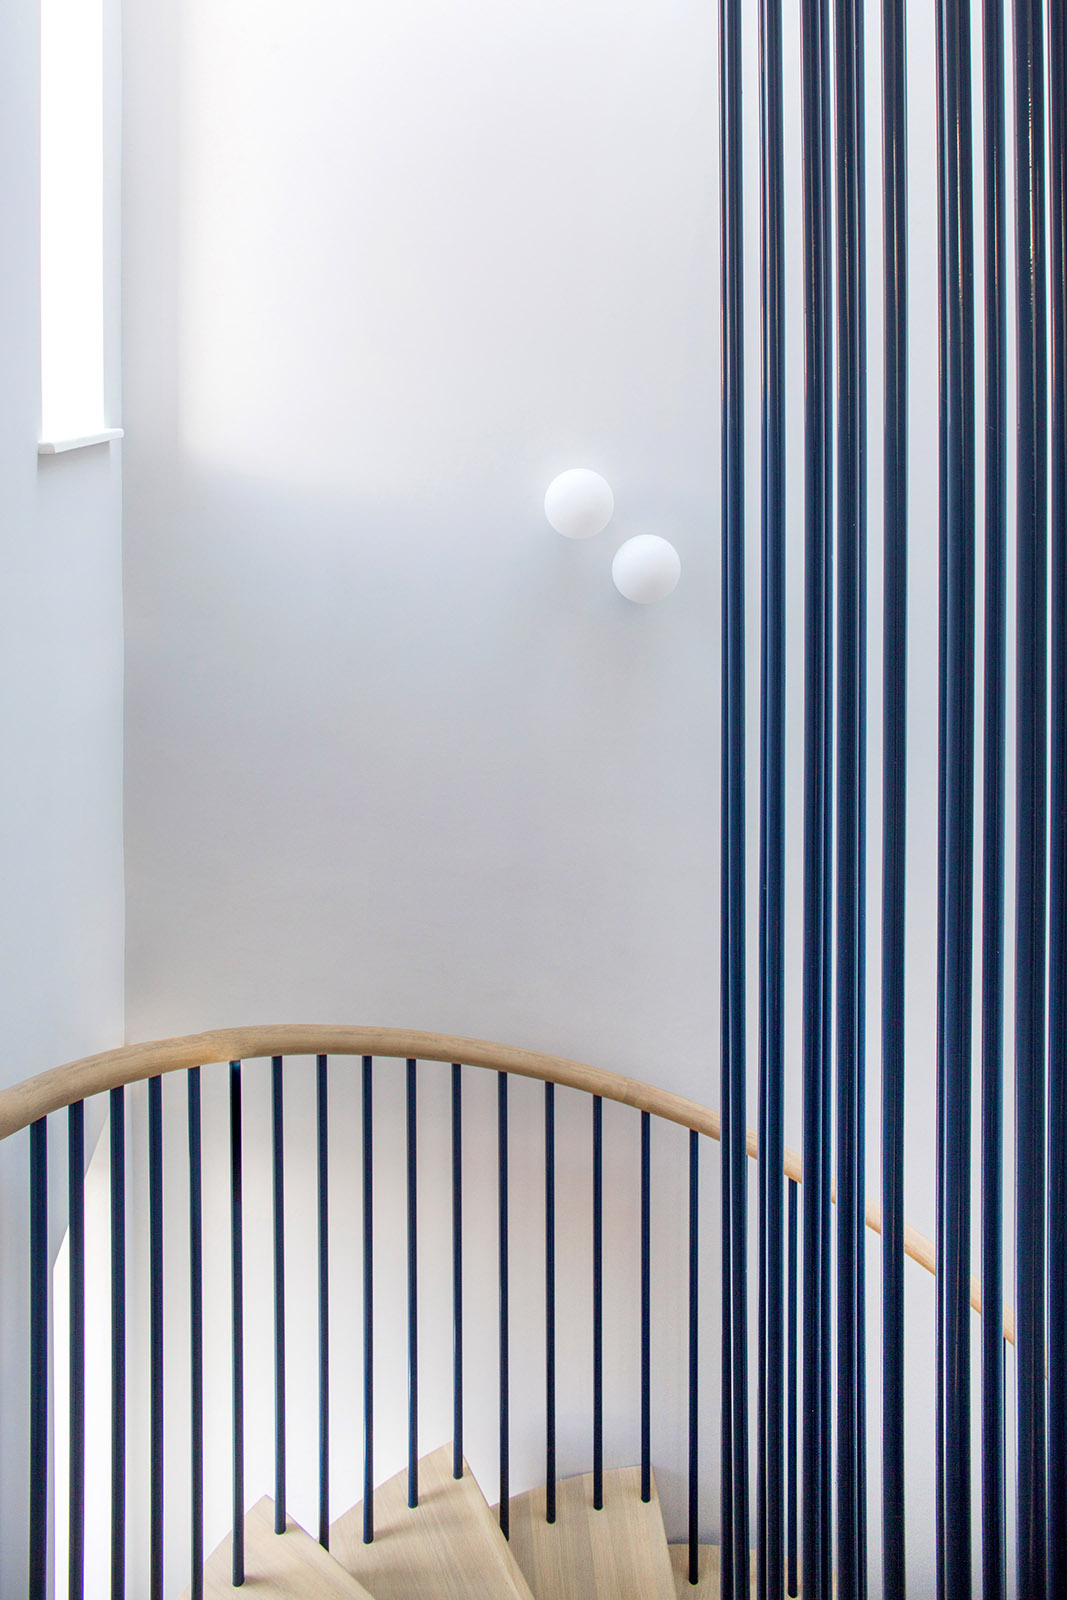 Architect designed staircase in London house, kensington